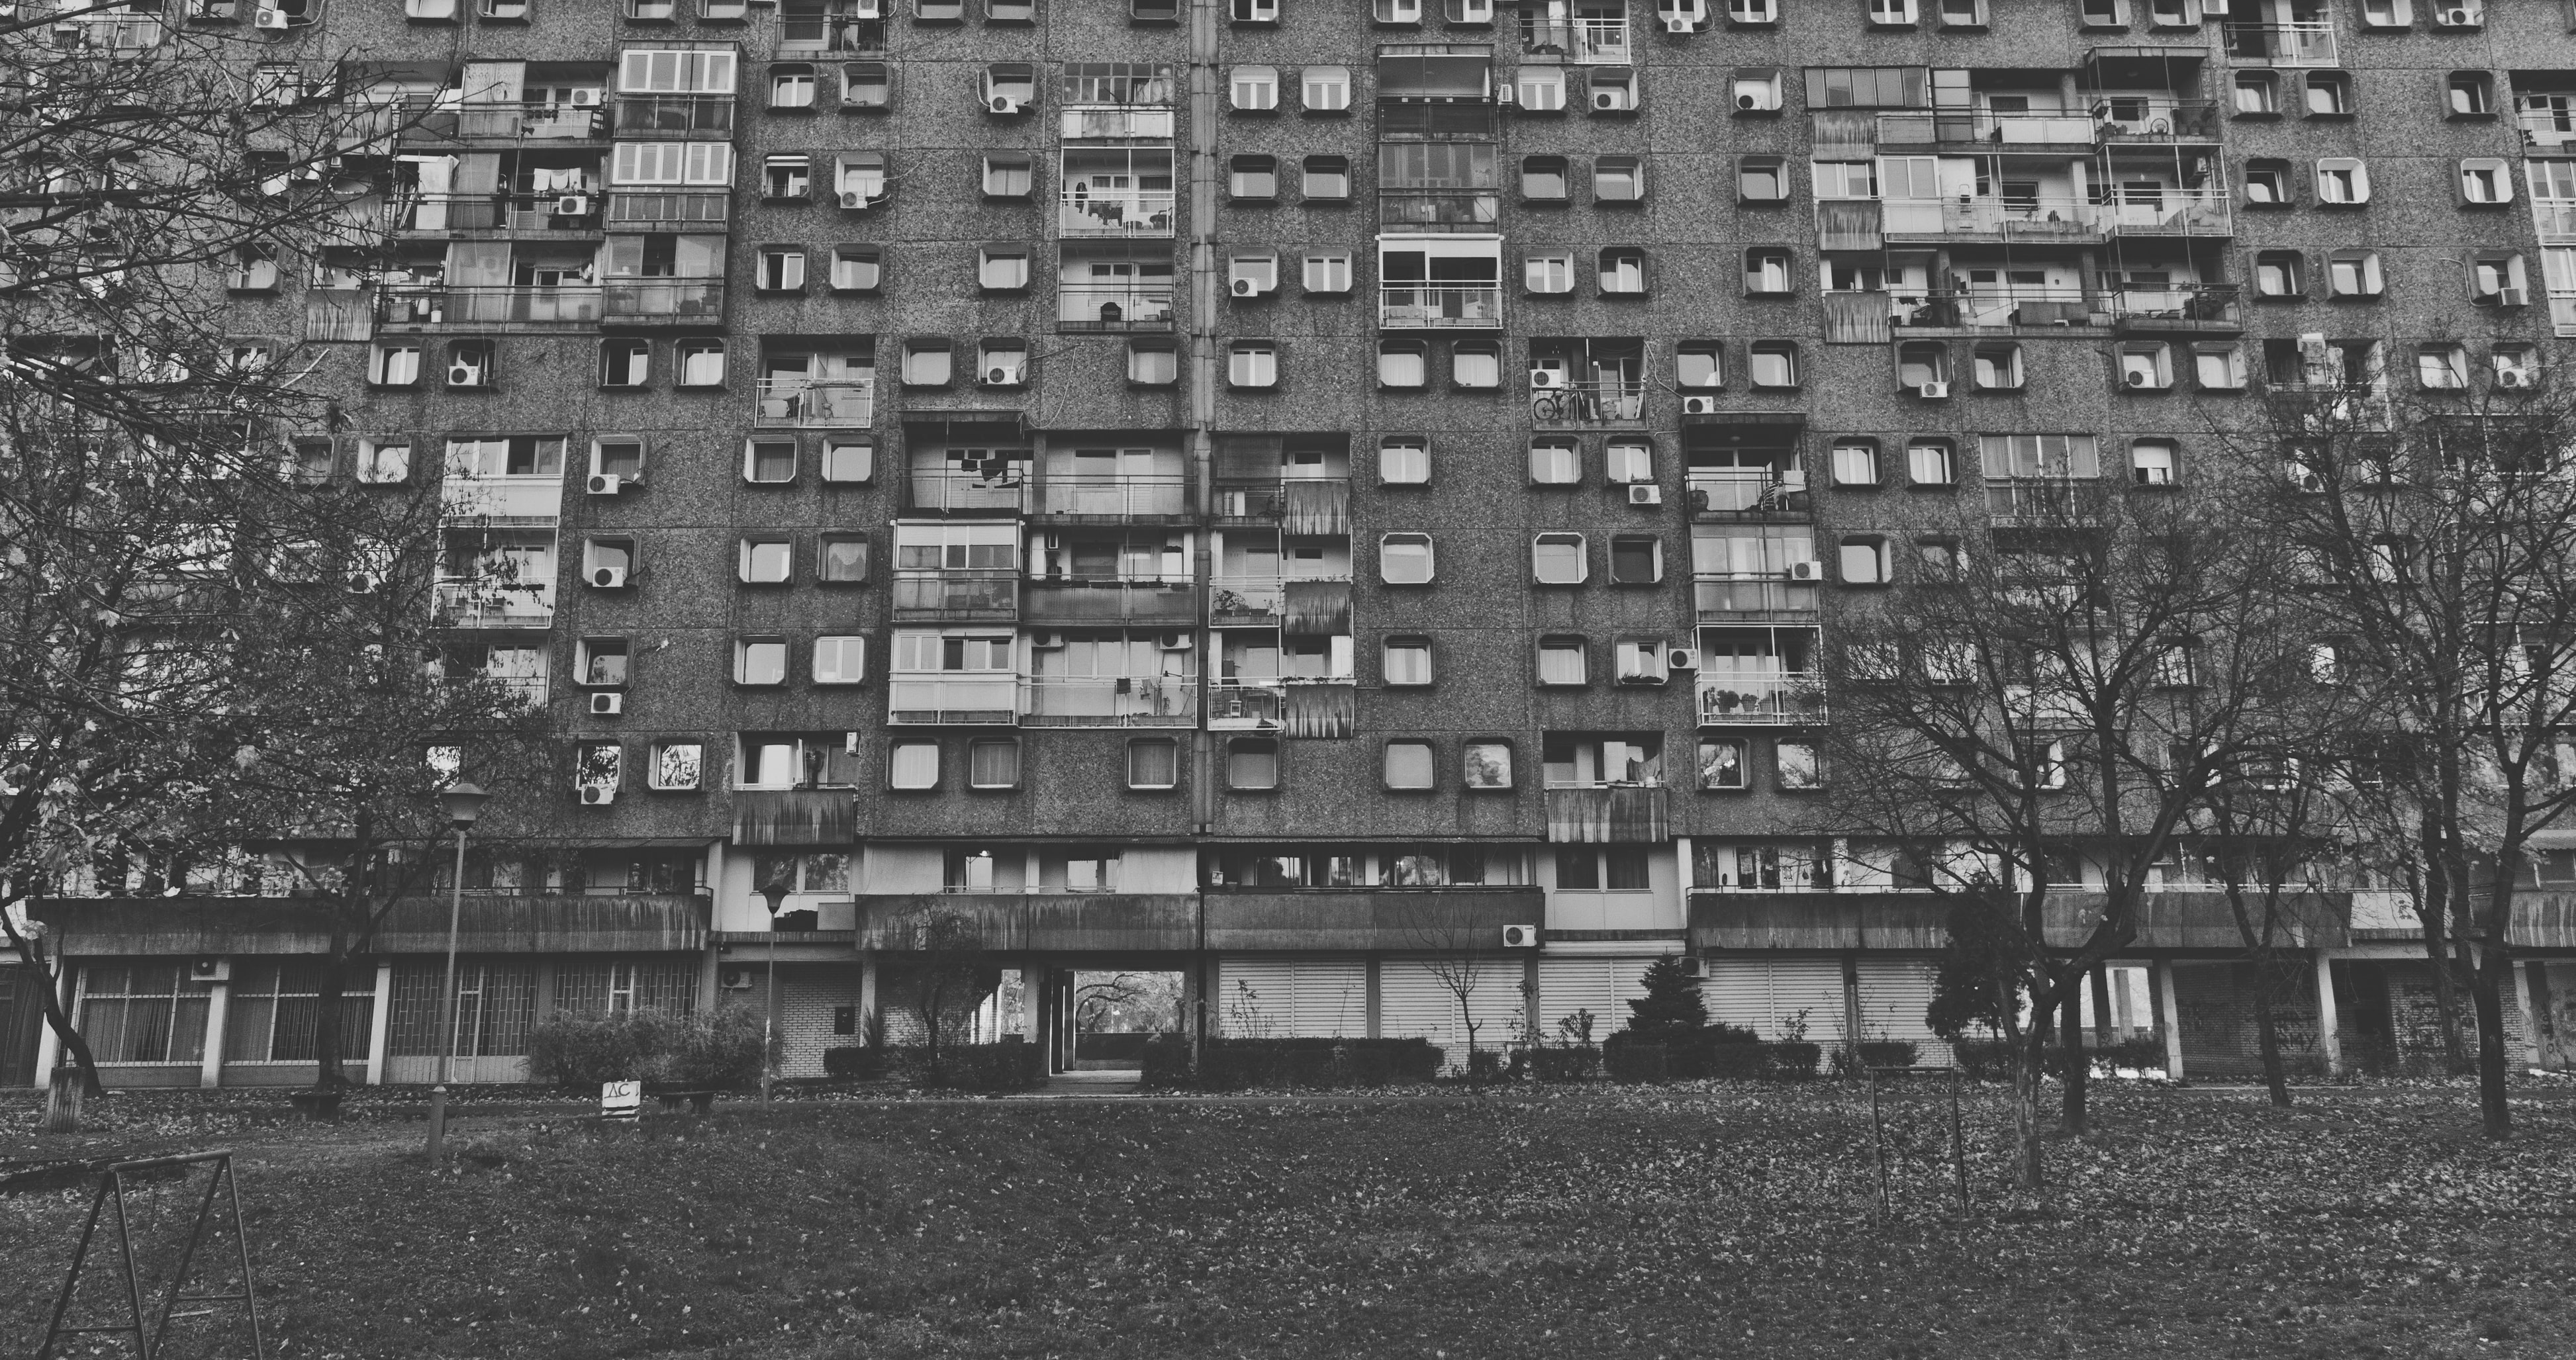 Black and white shot of rundown residential building with grass and trees in Novi Beograd